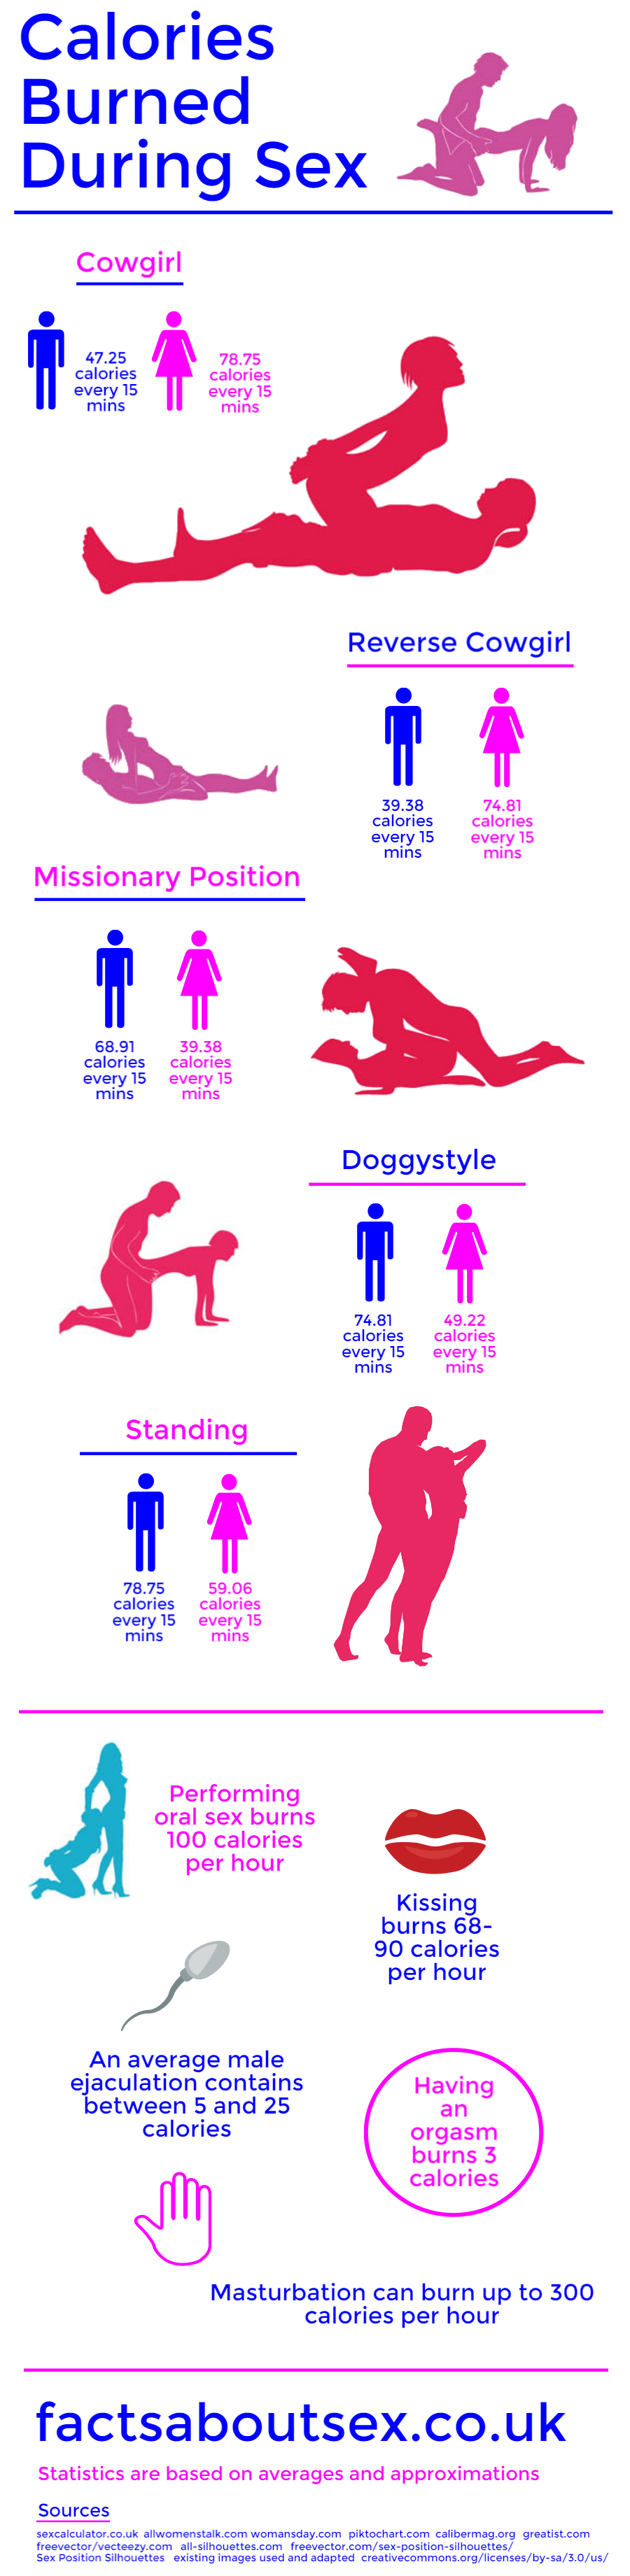 Calories burned during sex infographic